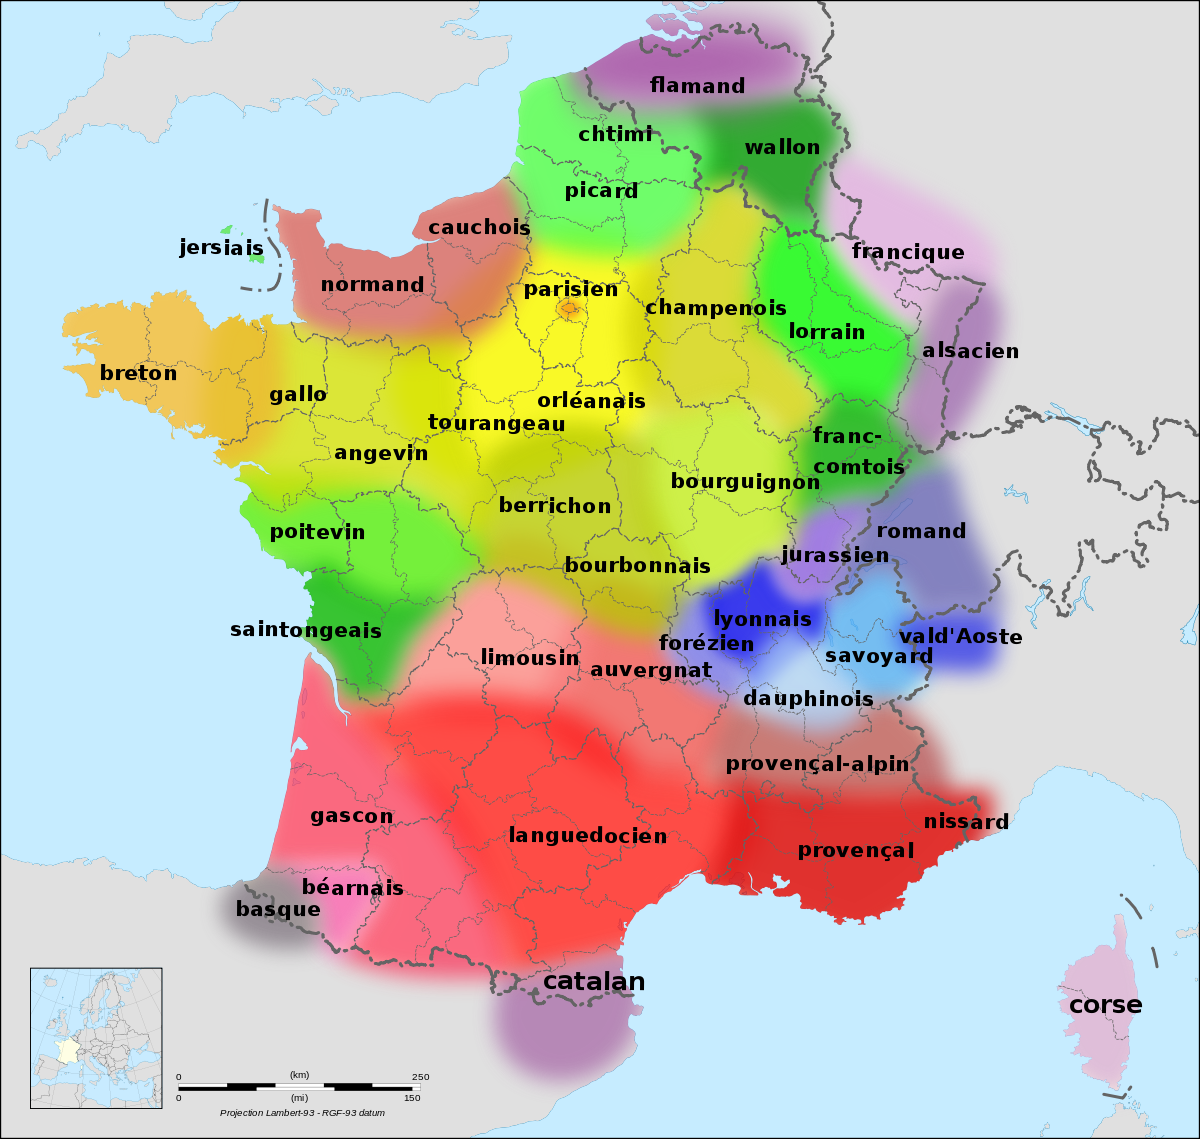 The various regional languages of France